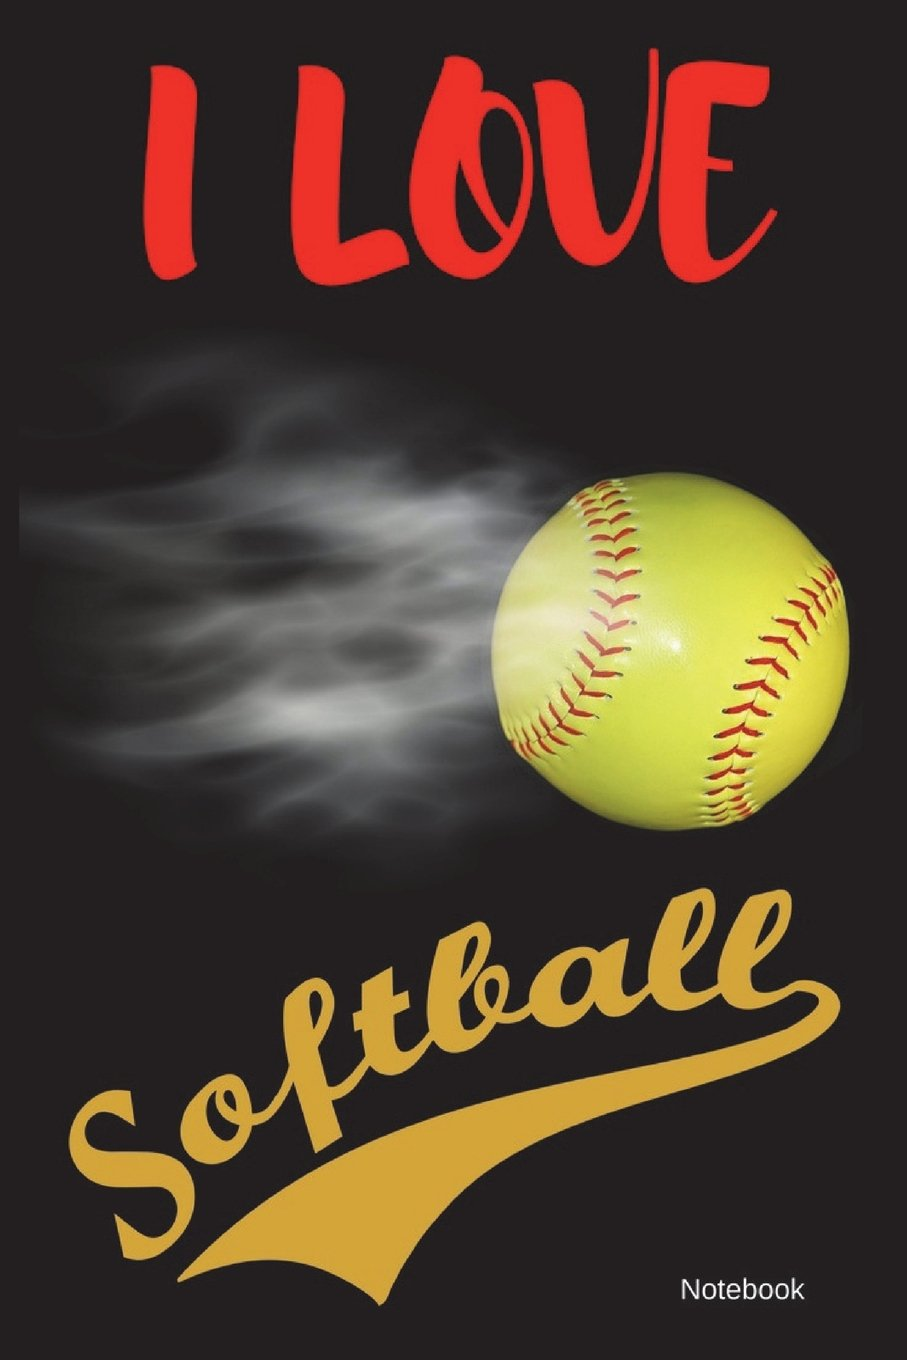 I Love Softball Notebook: 6 x 9 Sized, 100 Lined Pages Composition Notebook for Softballl Fans (Softball Notebooks) (Volume 1) ebook